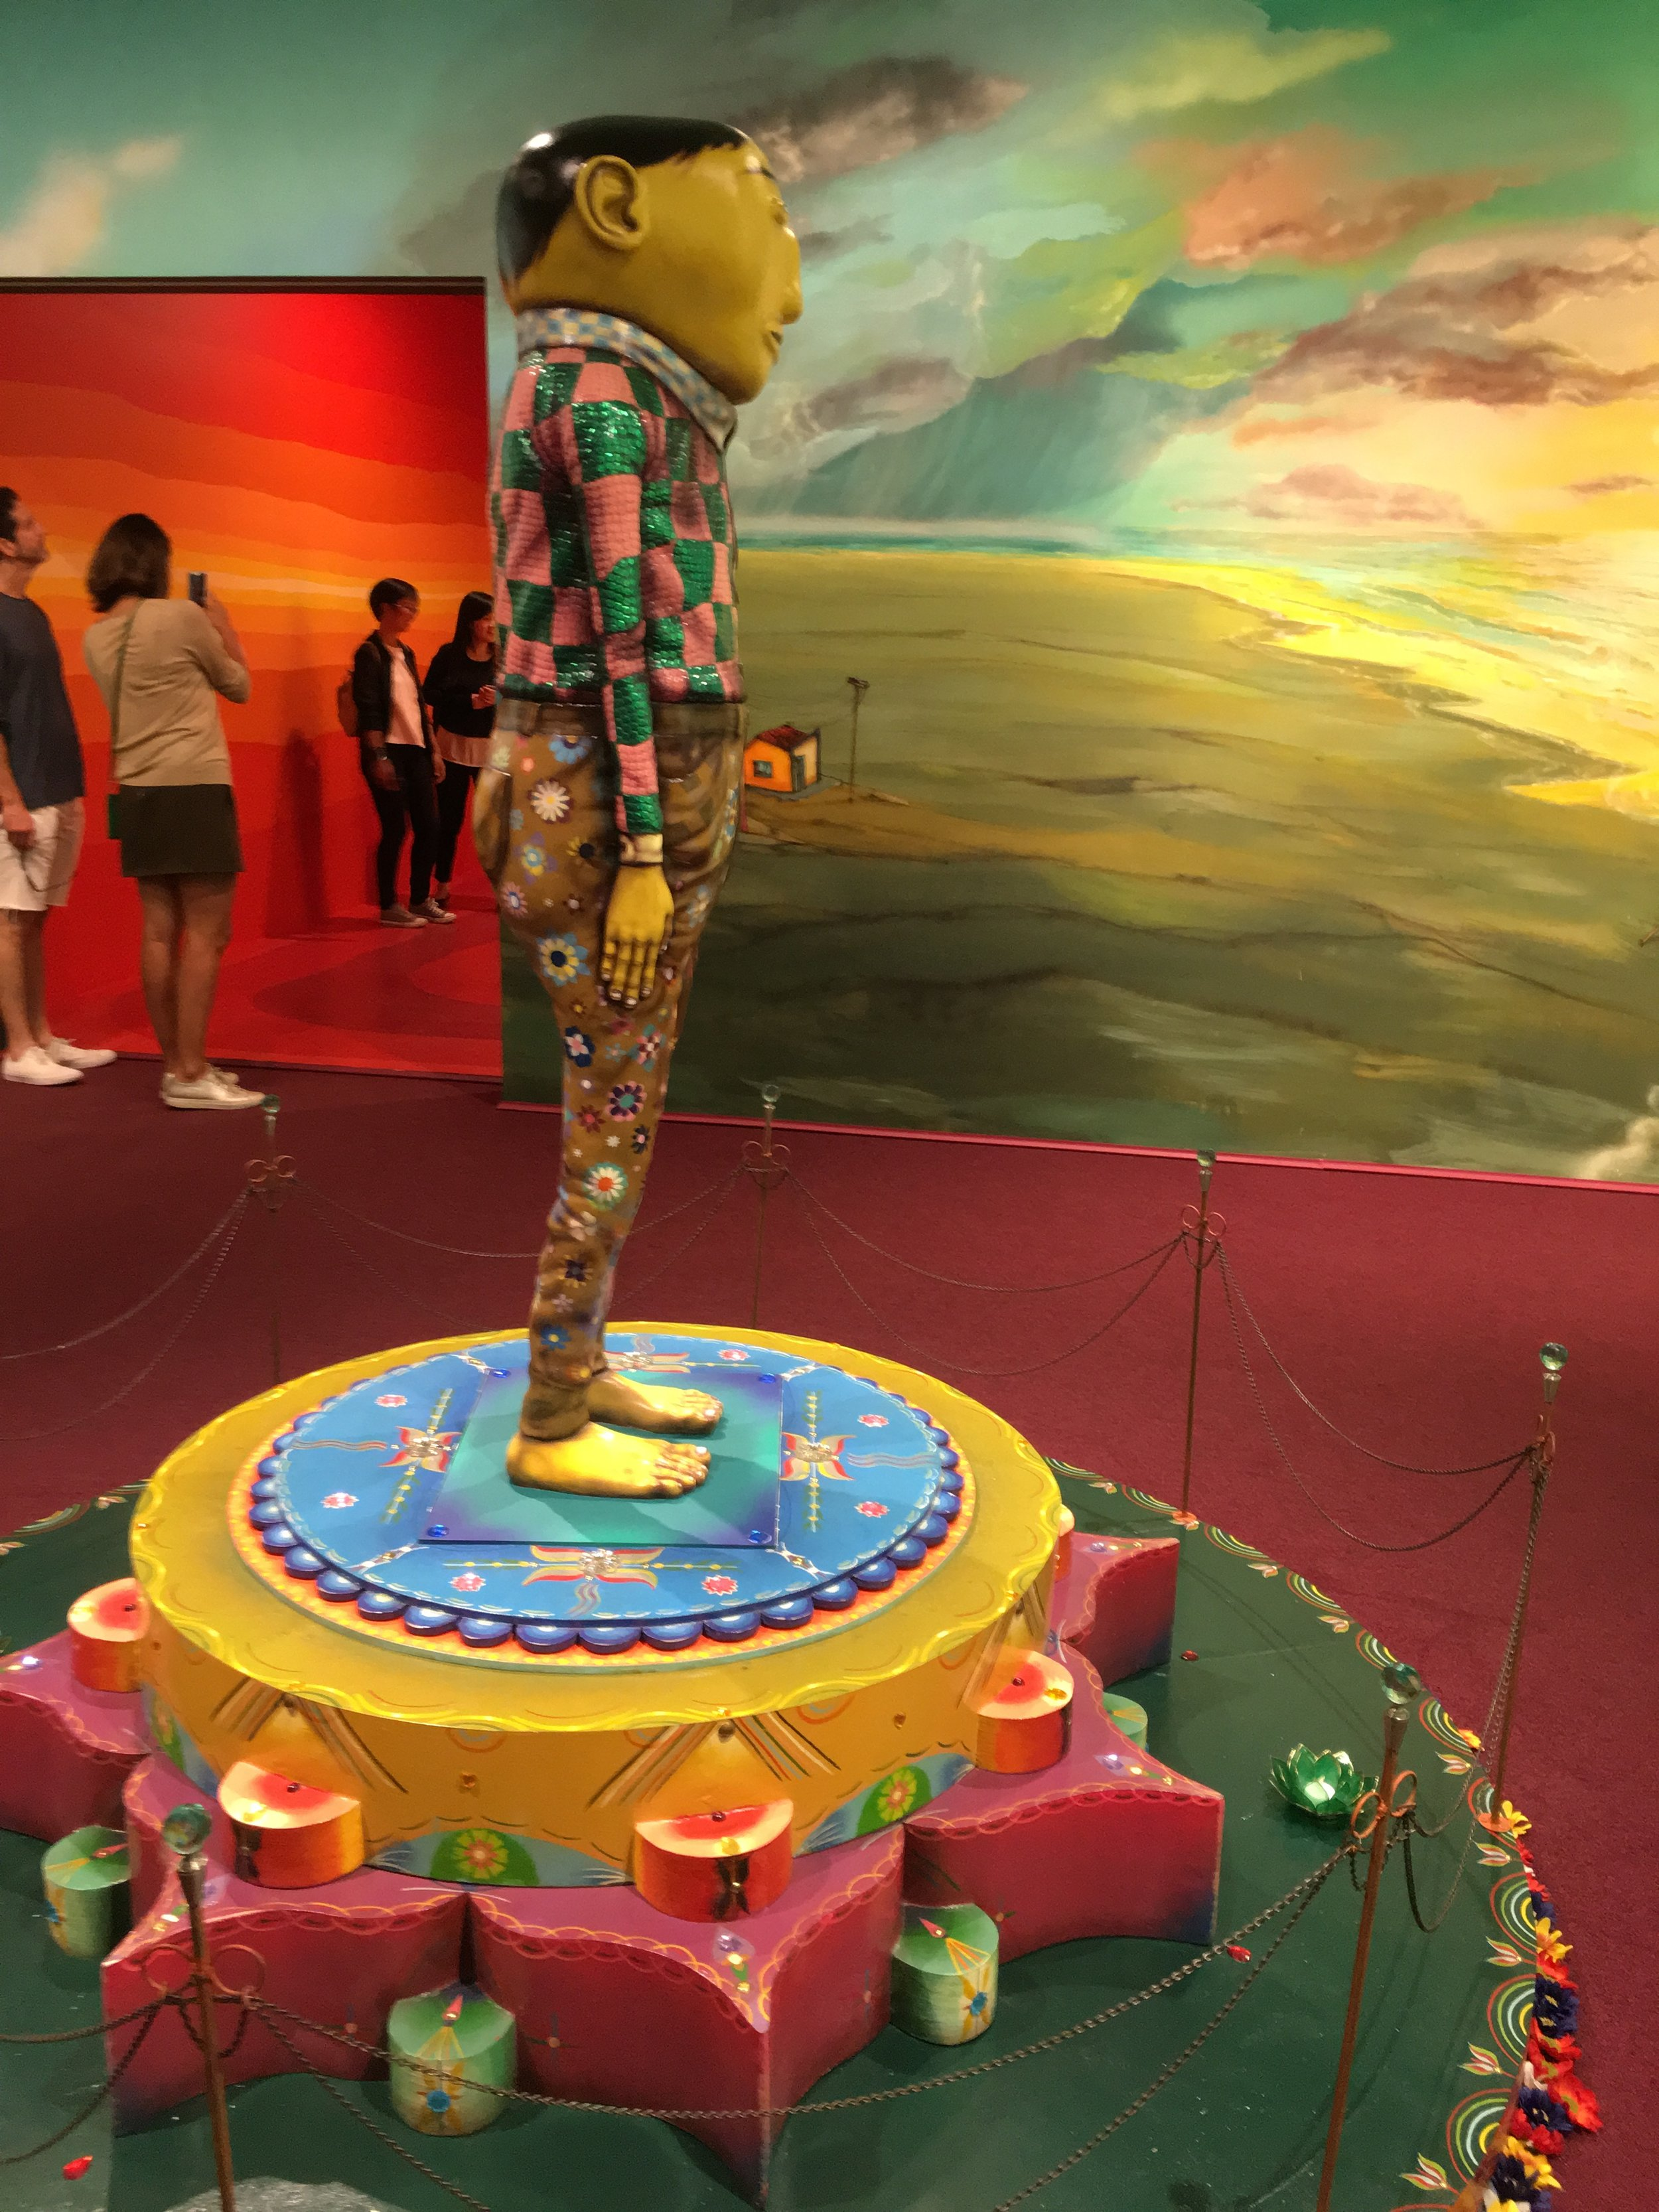 """OSGEMEOS """"Silence of the Music""""/Lehmann Maupin Gallery New York   O iluminado (The illuminated),  2015   mixed media with sequins on plaster   64.57 x 19.69 x 17.72 inches   164 x 50 x 45 cm"""